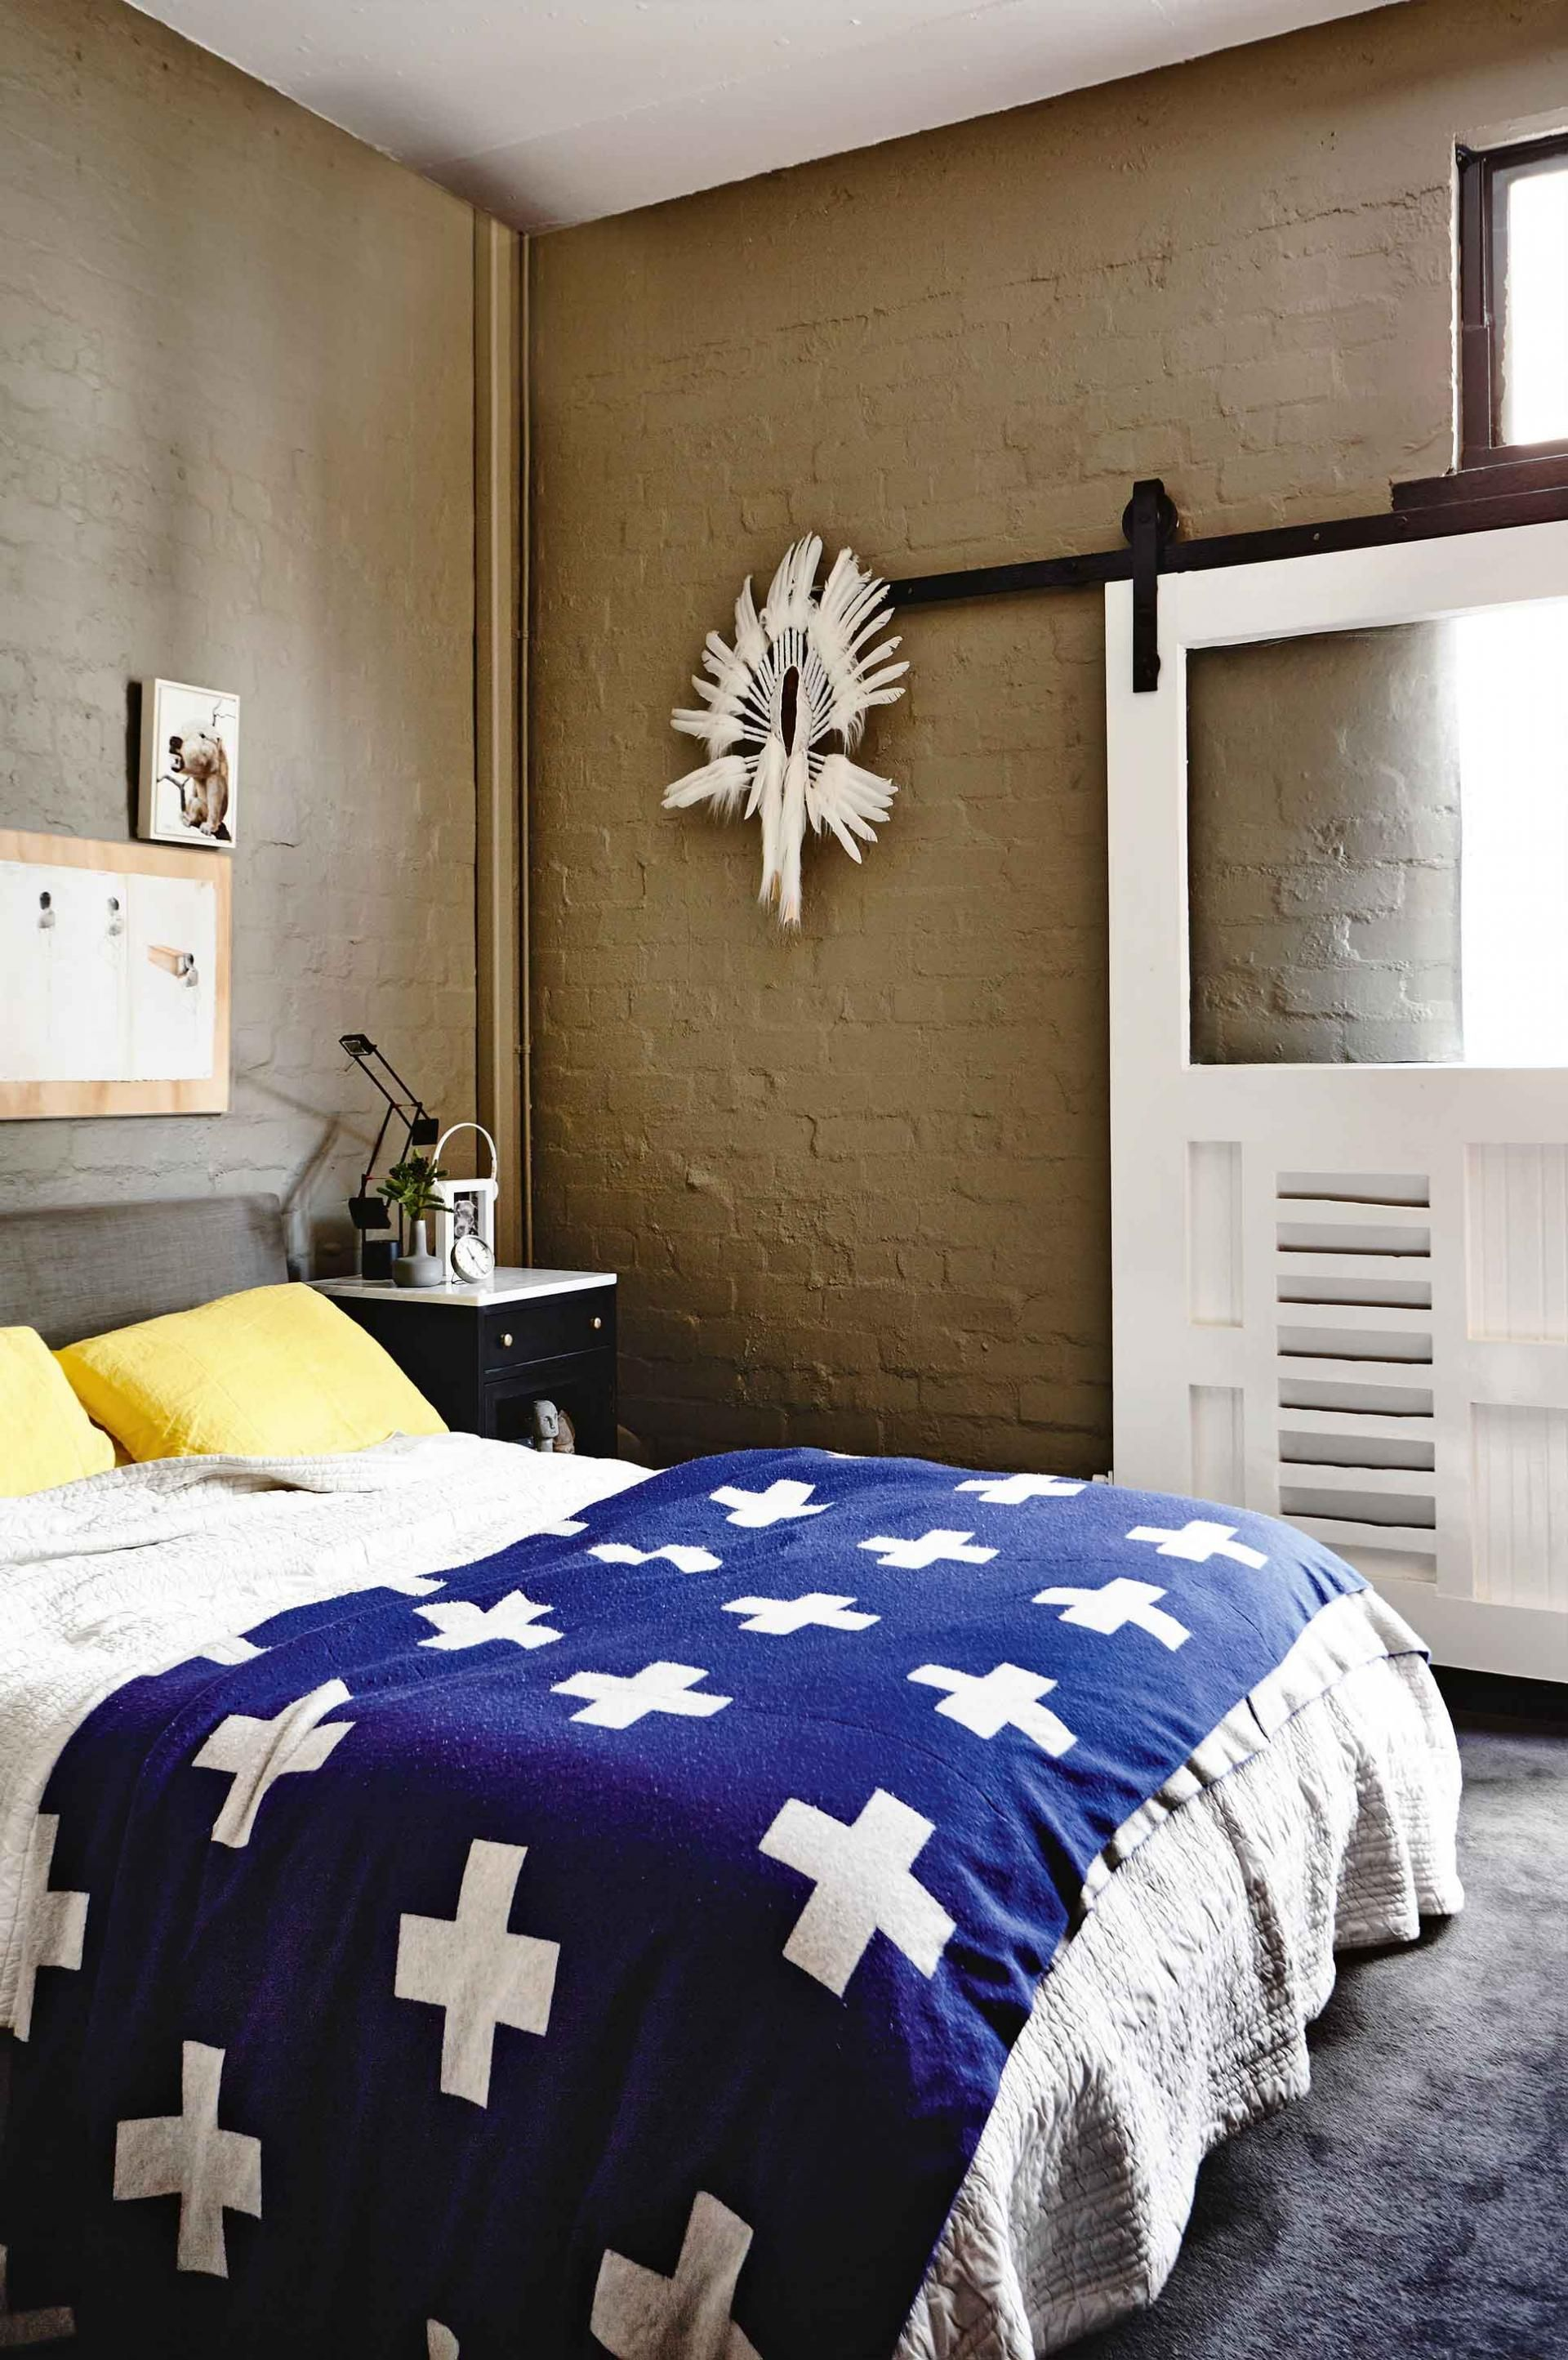 industrial bedroom furniture melbourne%0A Masculin   i industrial   ntro fost   fabric   de bere din Melbourne